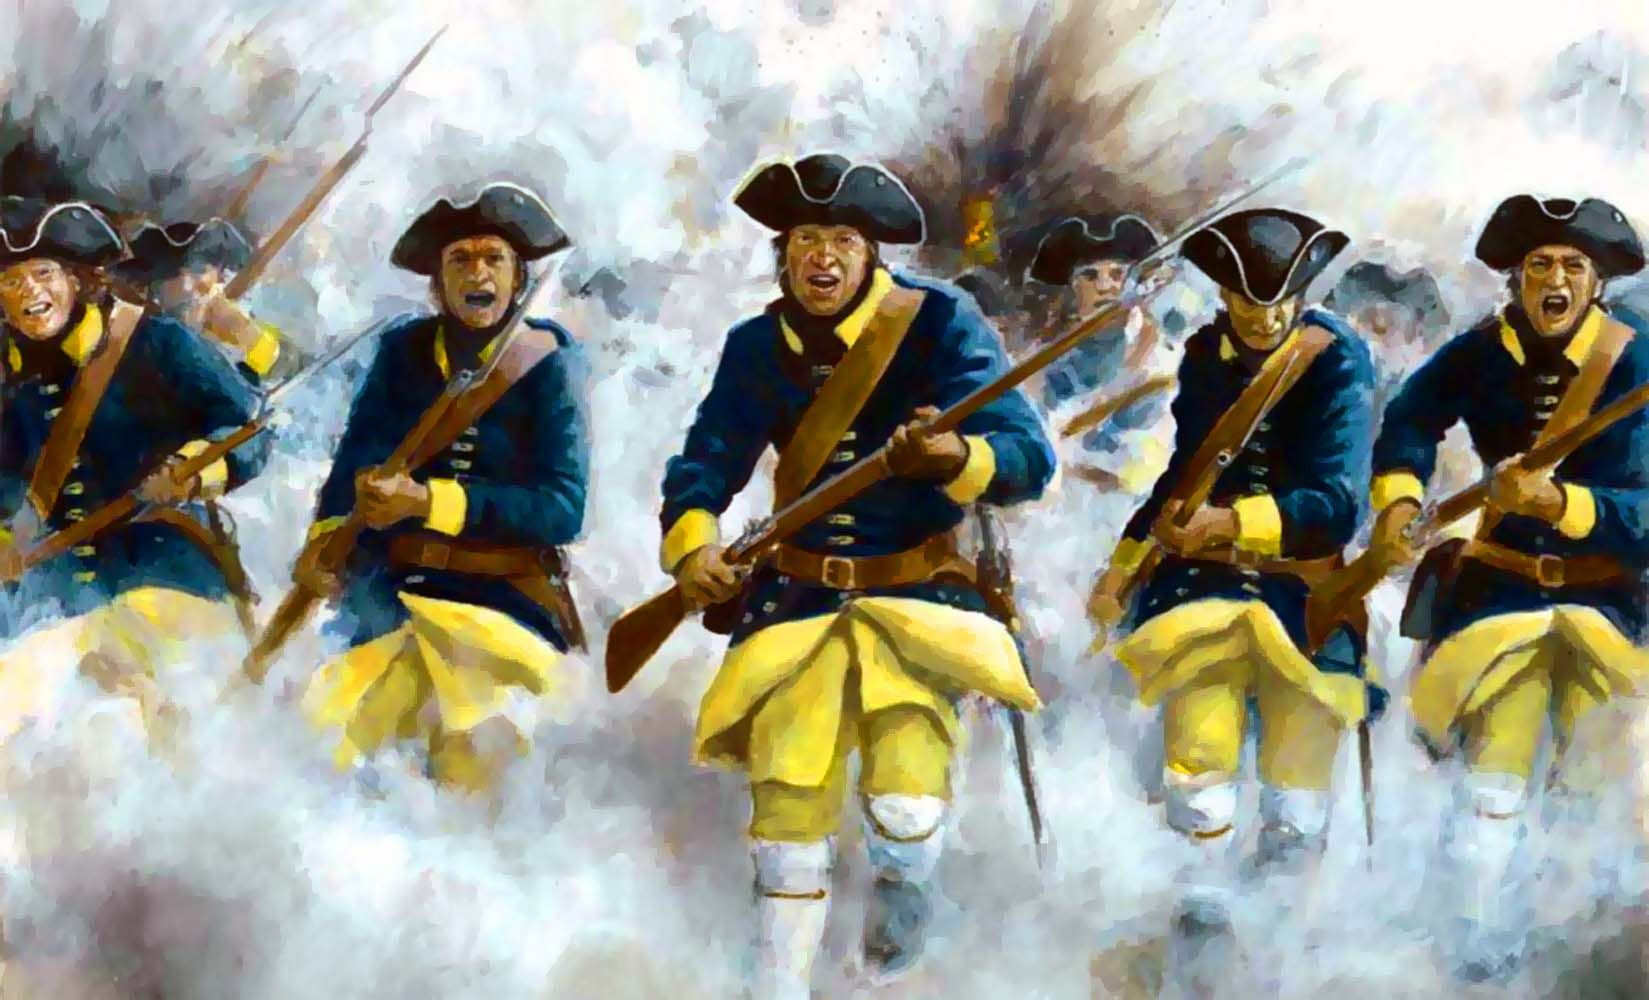 Charge of the Swedish Carolean infantry, Great Northern War